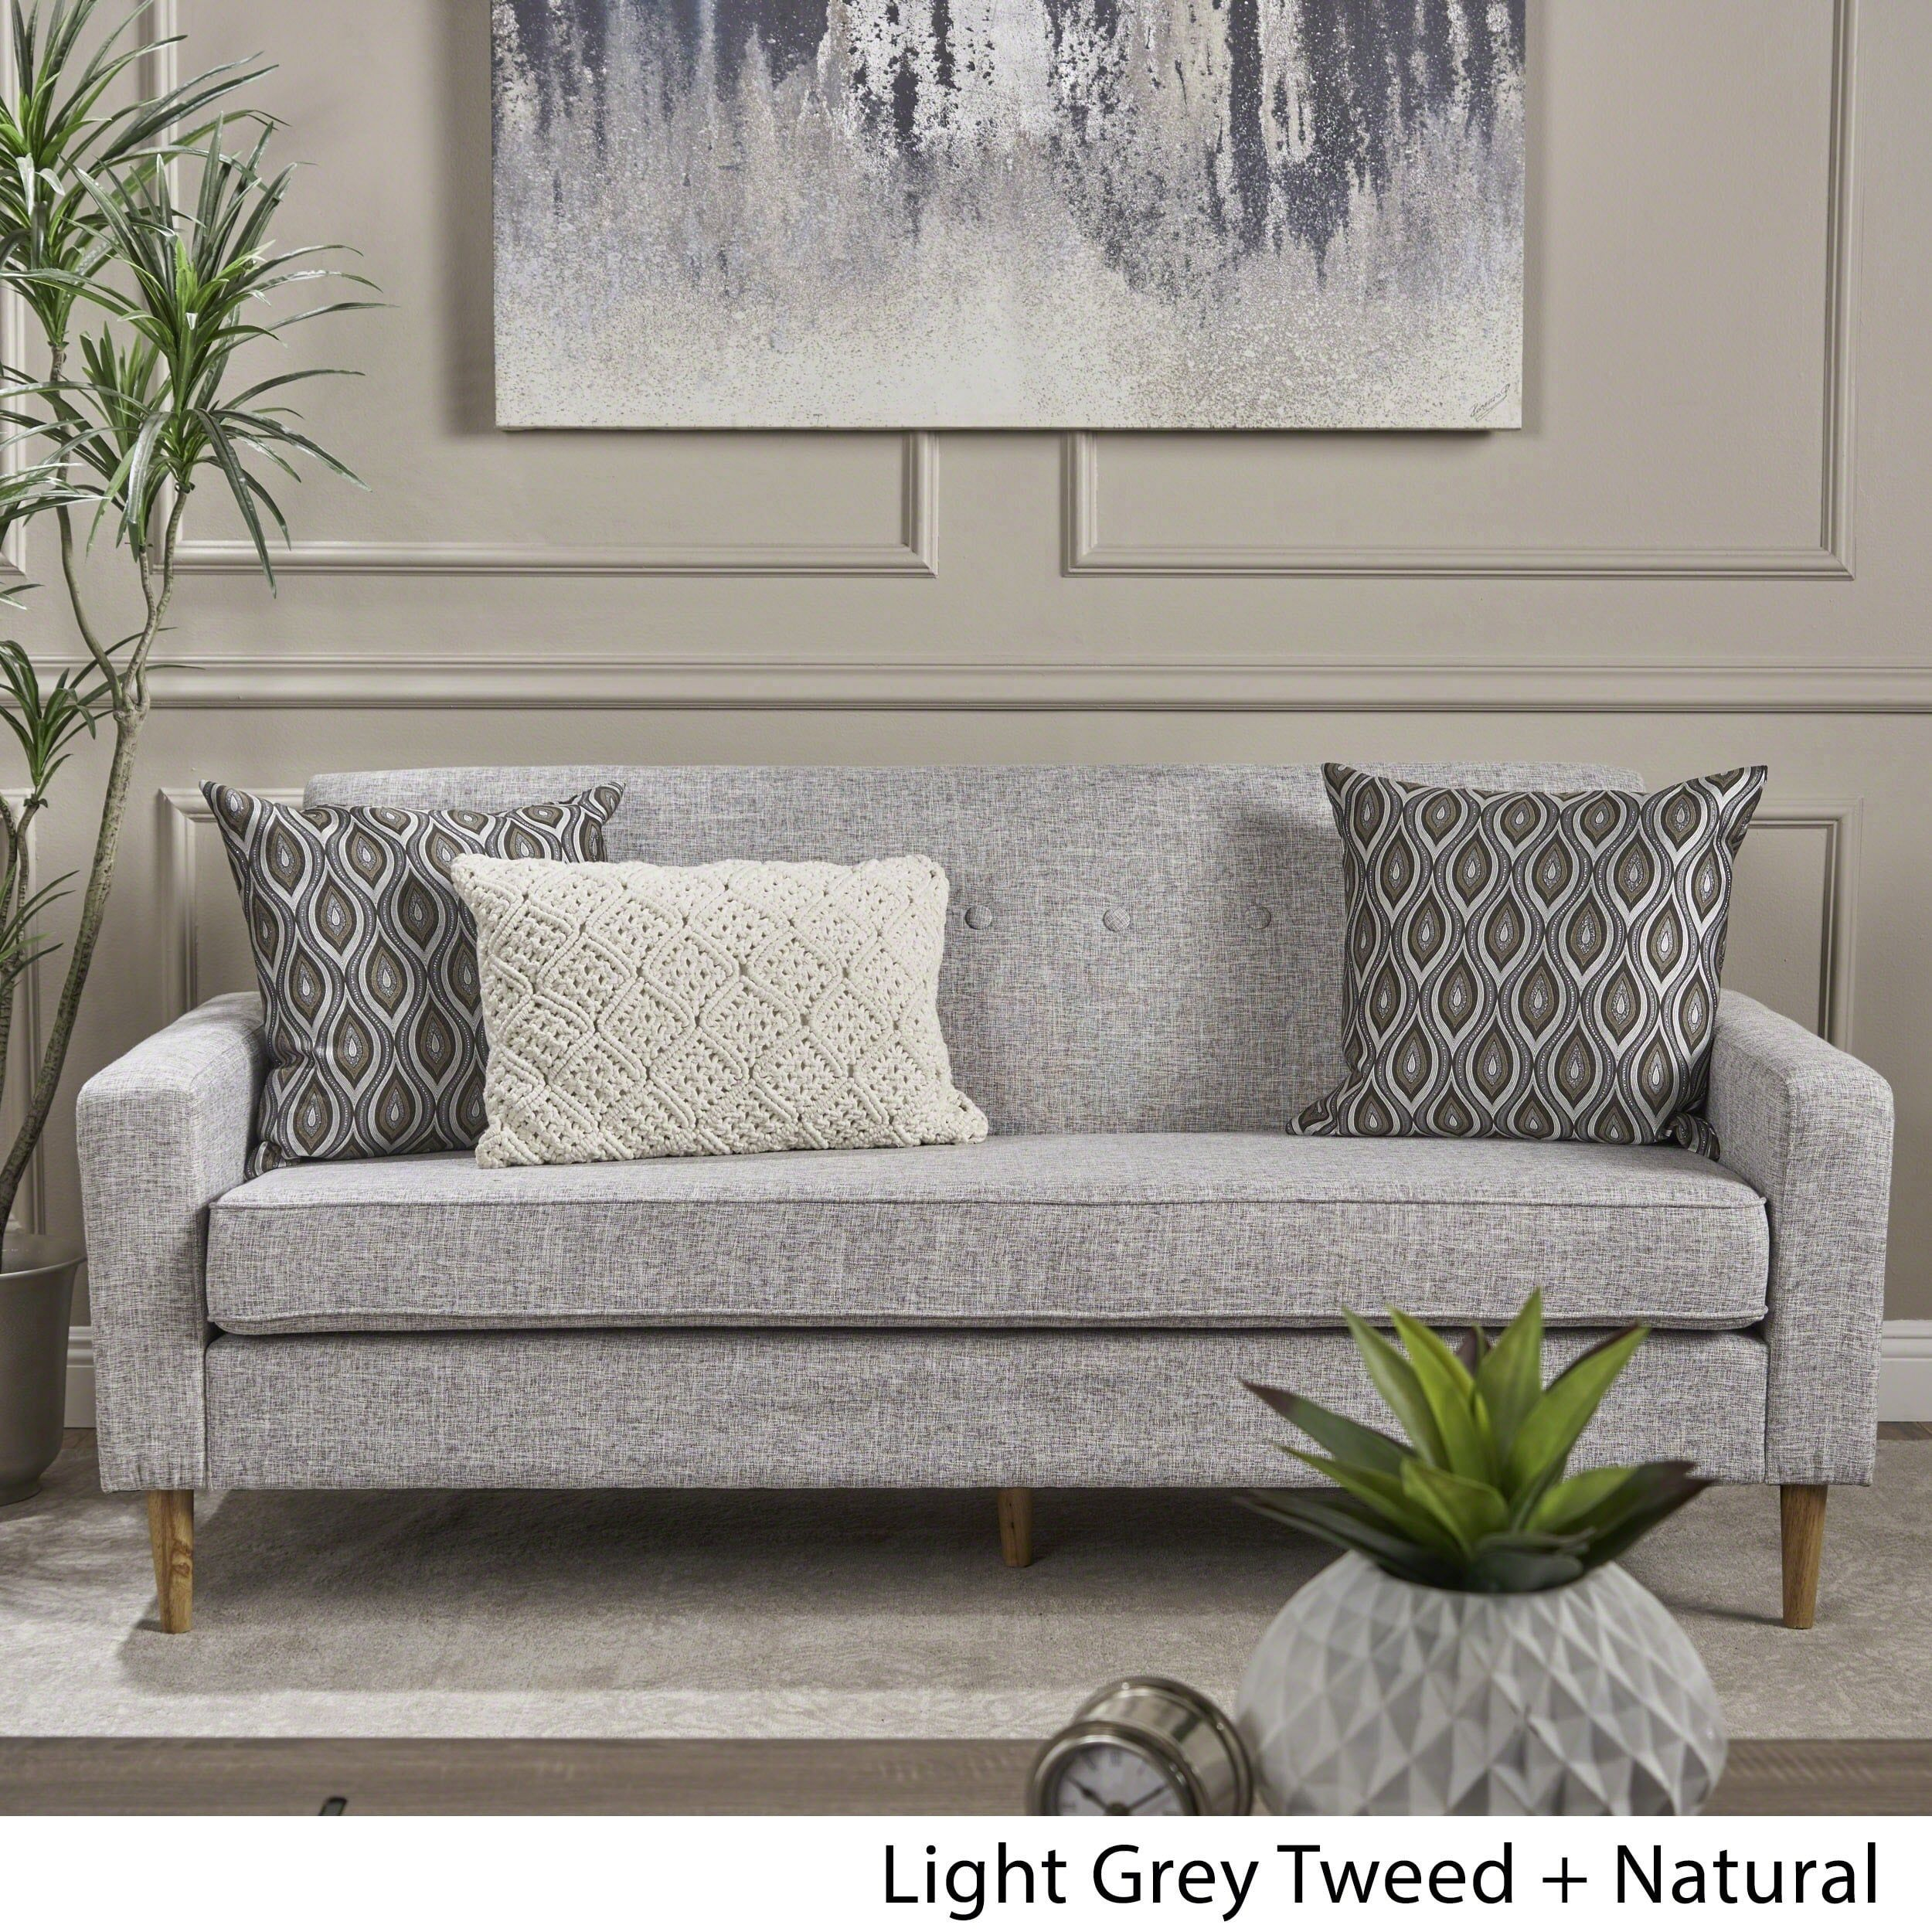 Mid Century Modern Light Gray Sofa Avery Yoga 100 Days Tweed Manhattan Comfort Granville 3 Seat